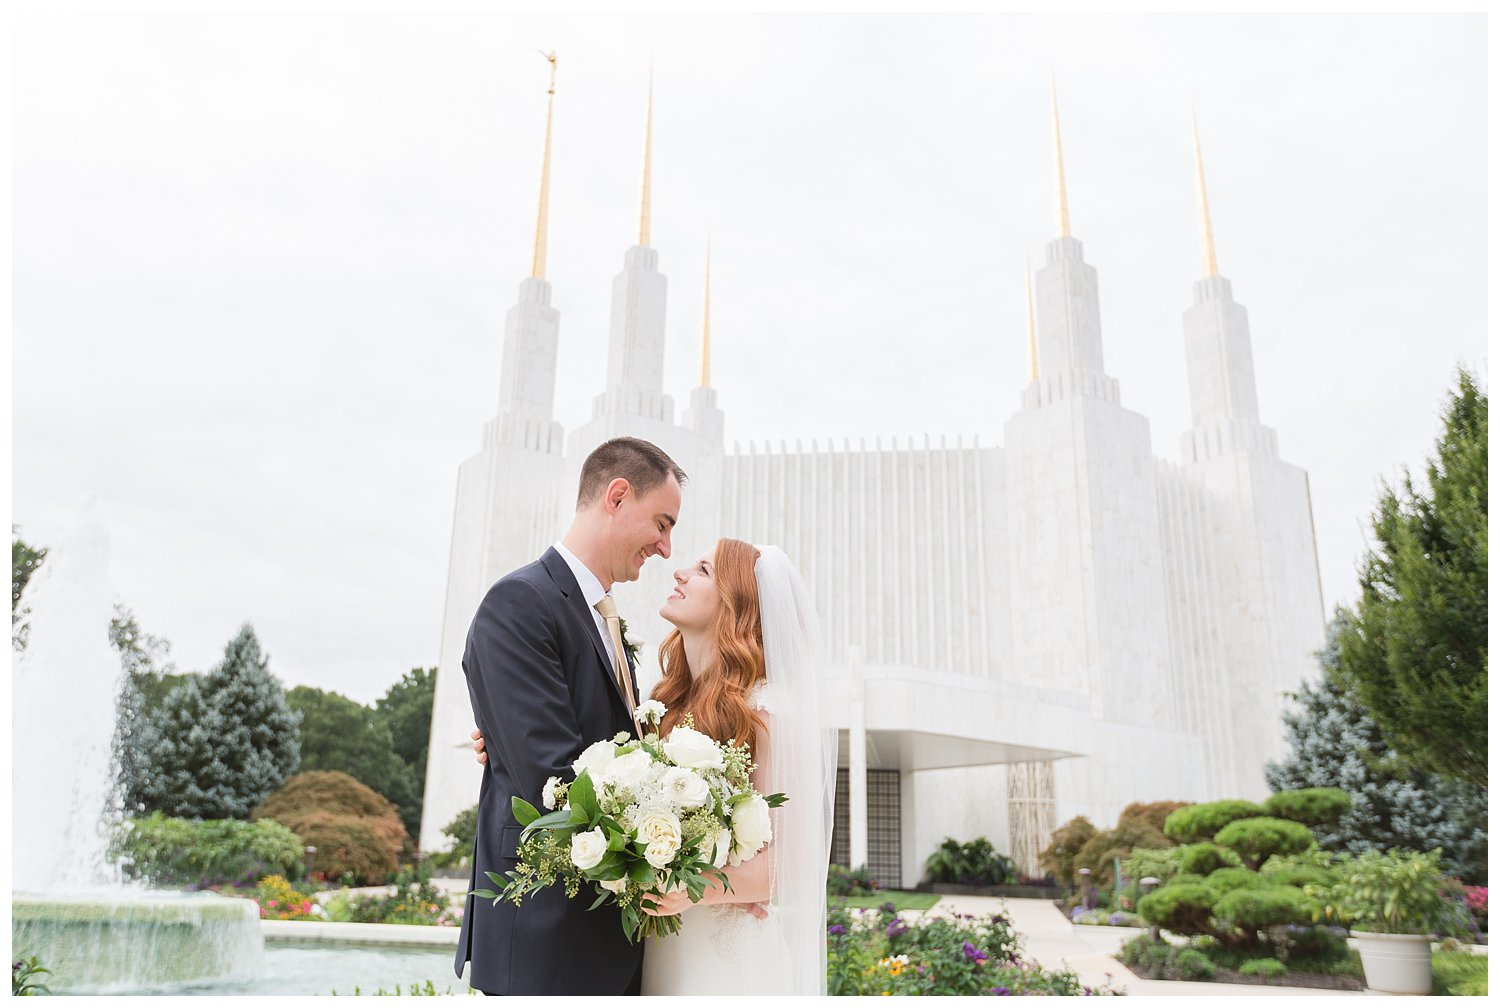 elovephotos Washington DC LDS Temple Photographer_0909.jpg